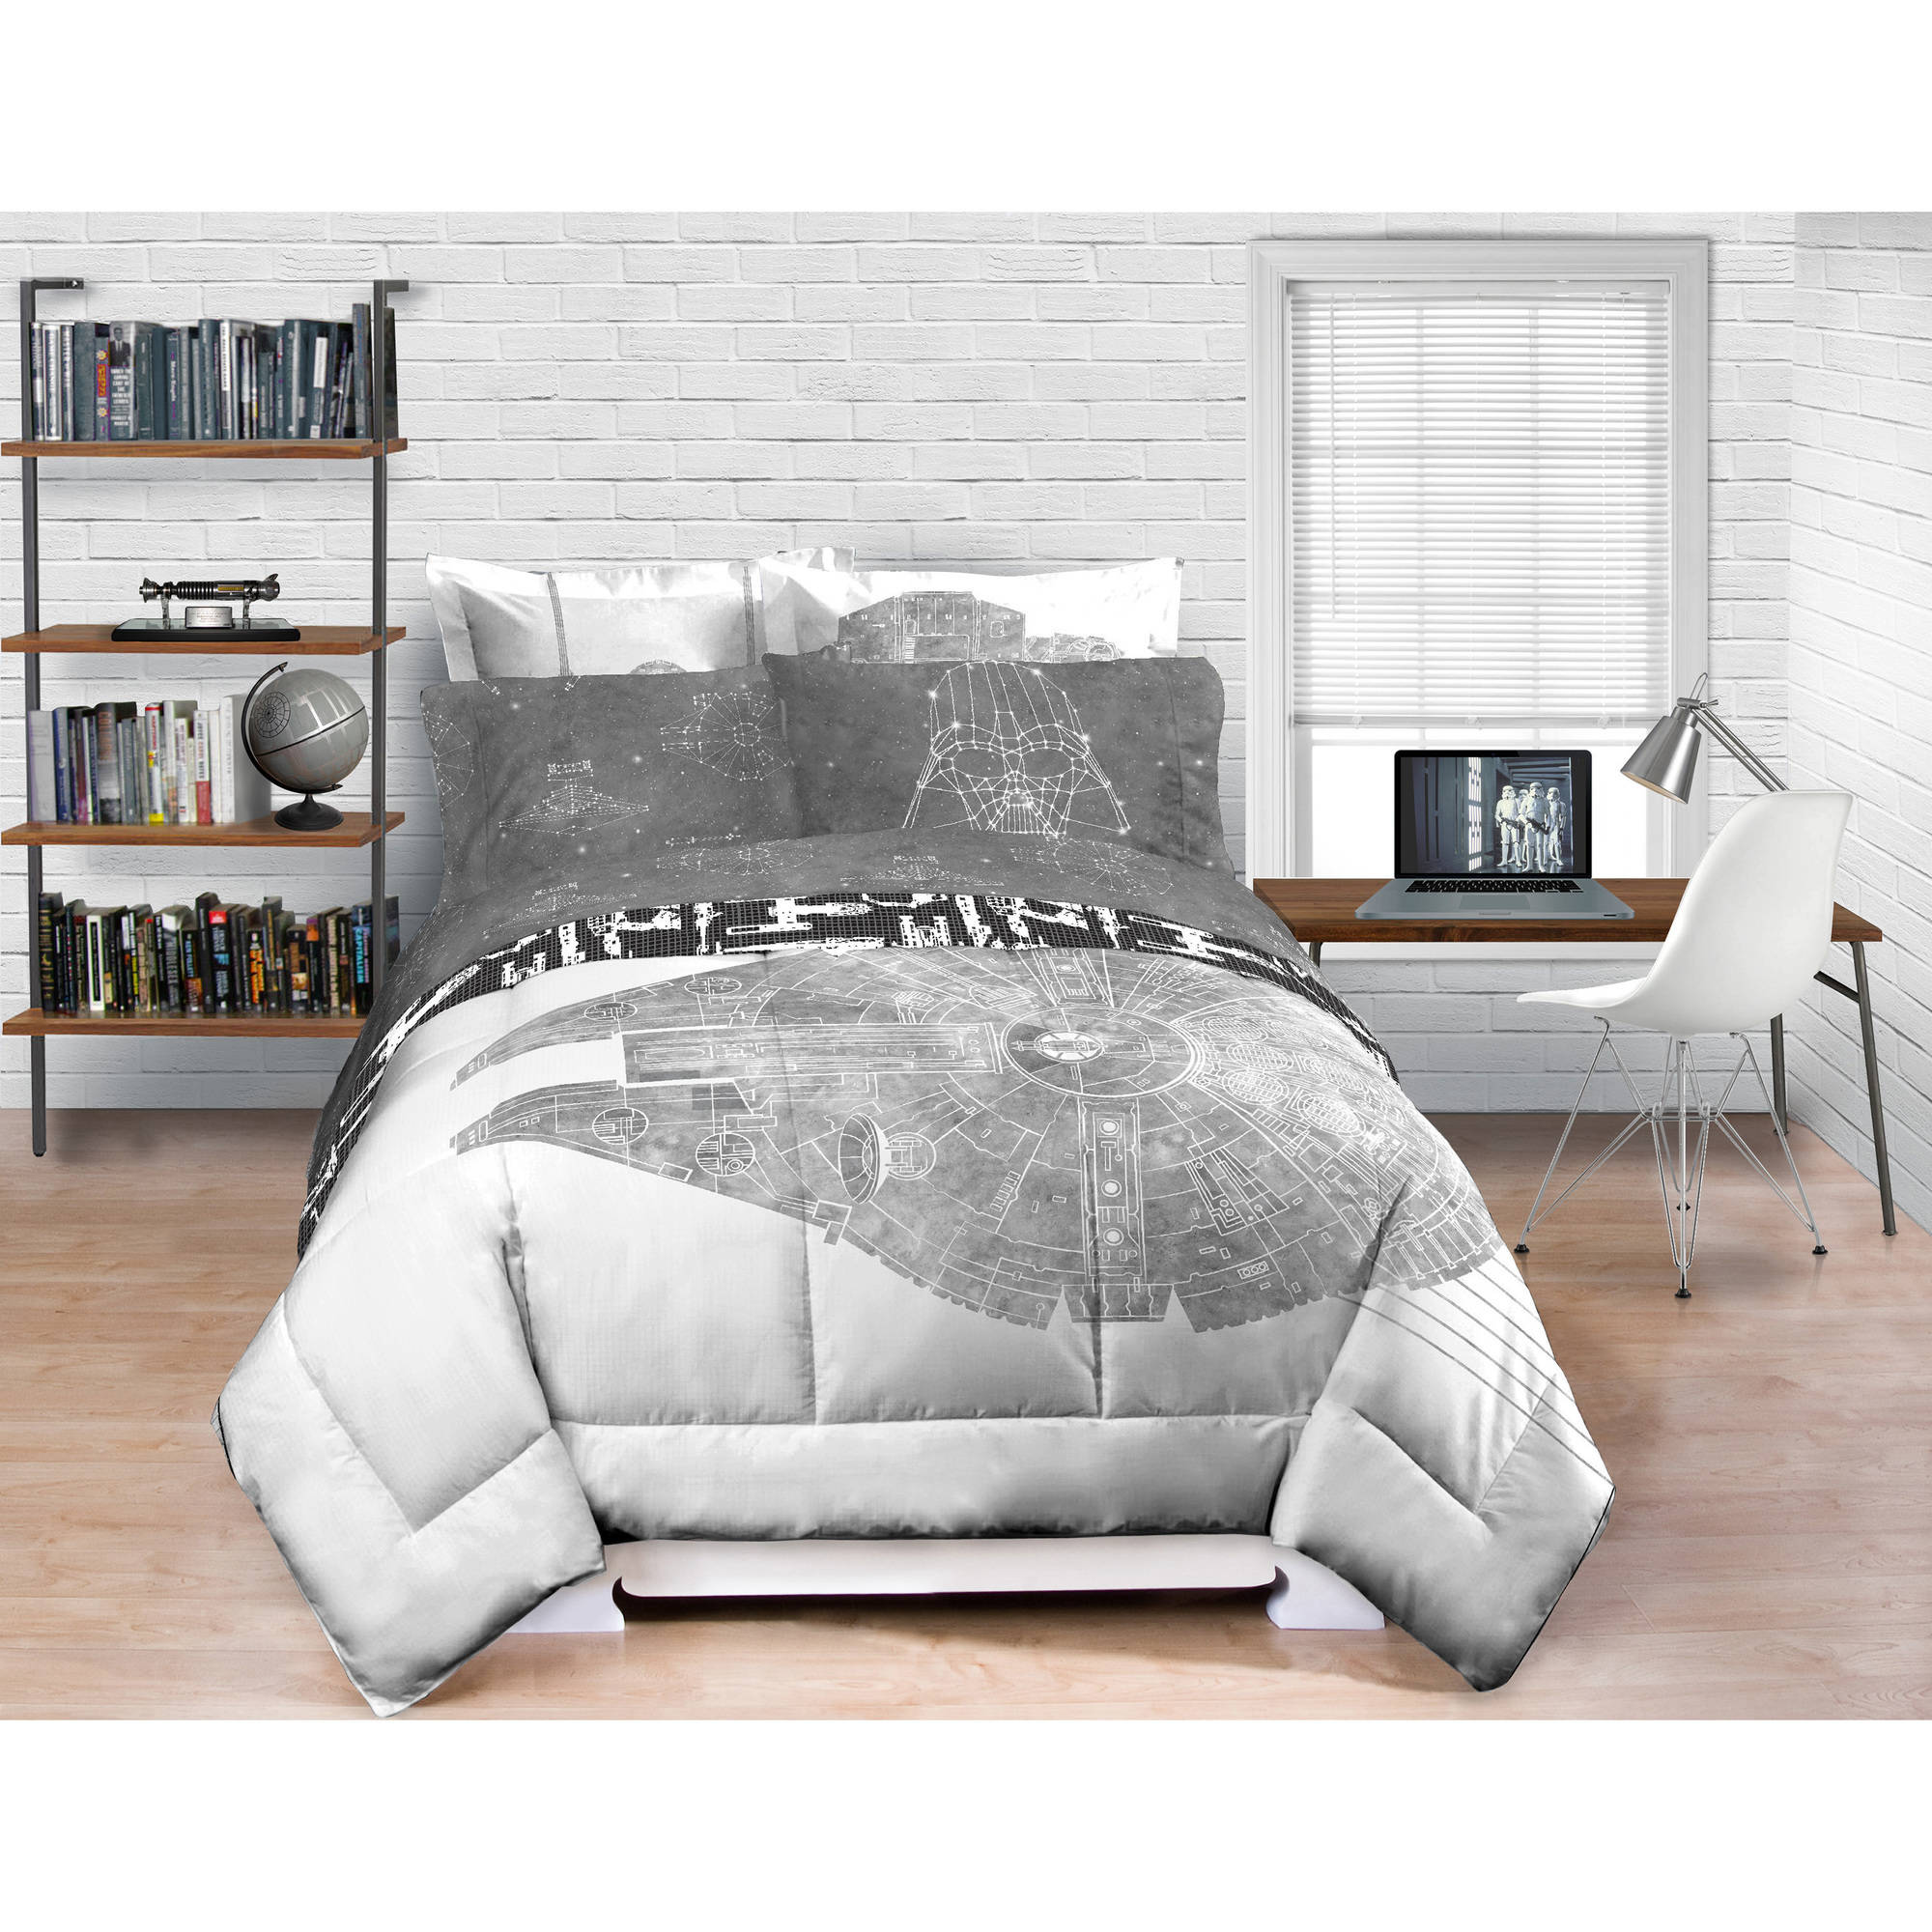 Star Wars Millennium Falcon Bedding Comforter- Exclusive